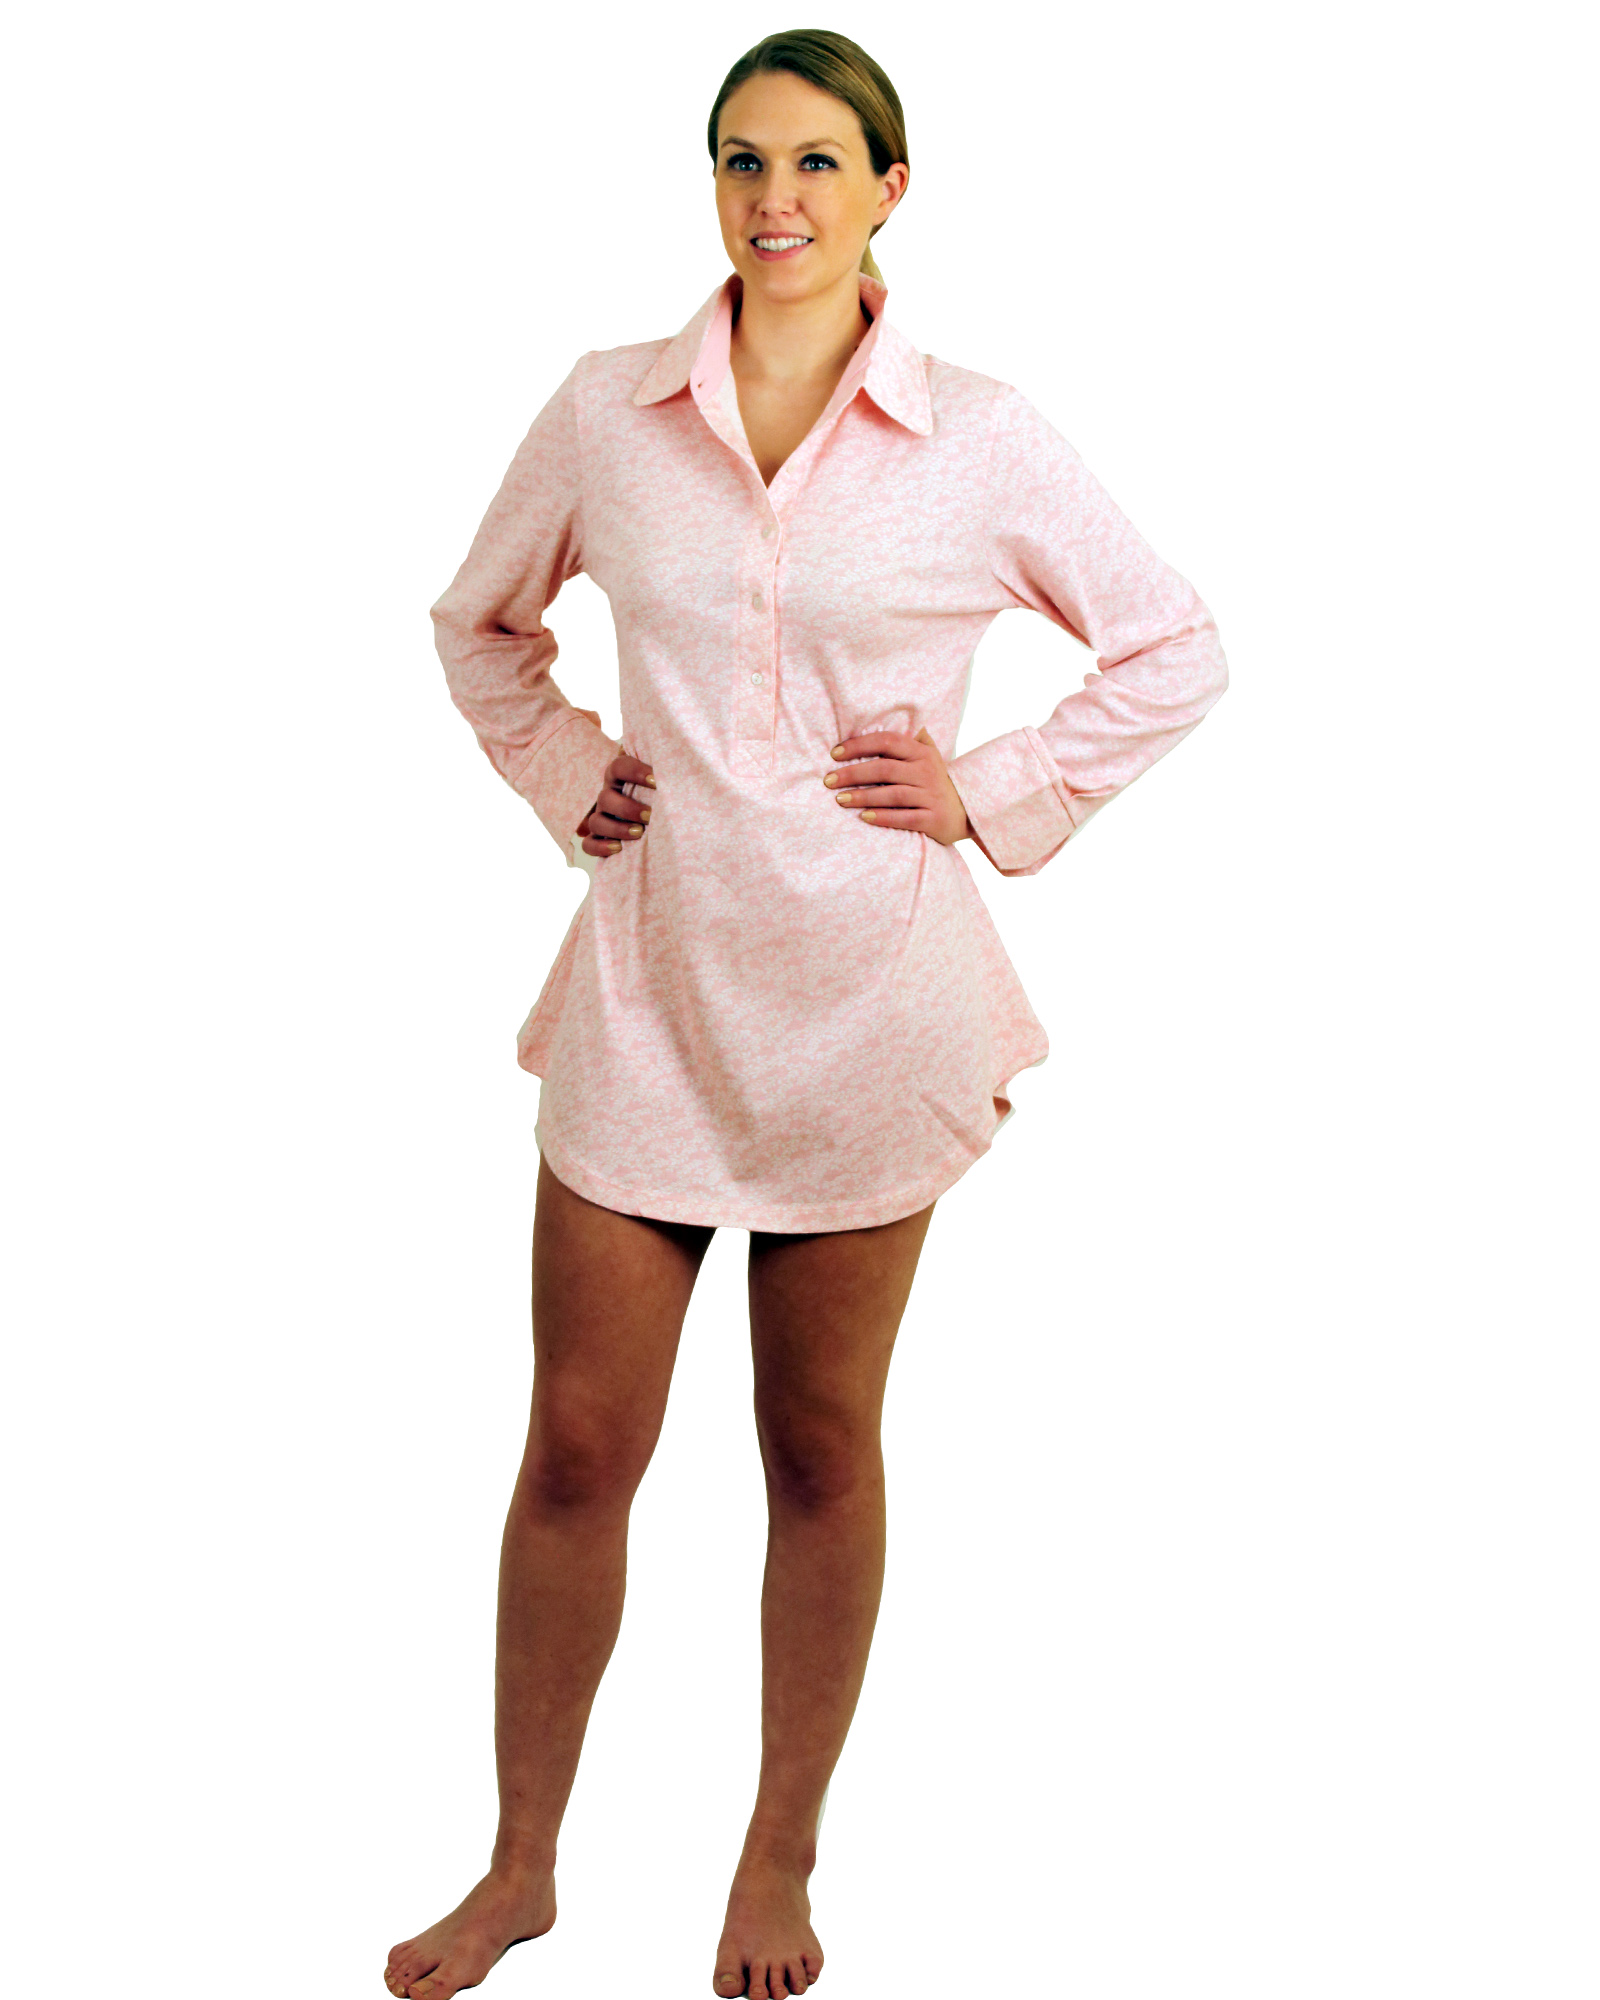 Cotton Jersey Printed Nightshirt With Buttons Placket - $15.99 Colors: Floral Polkadots Solid. Sizes:  XS S M L XL